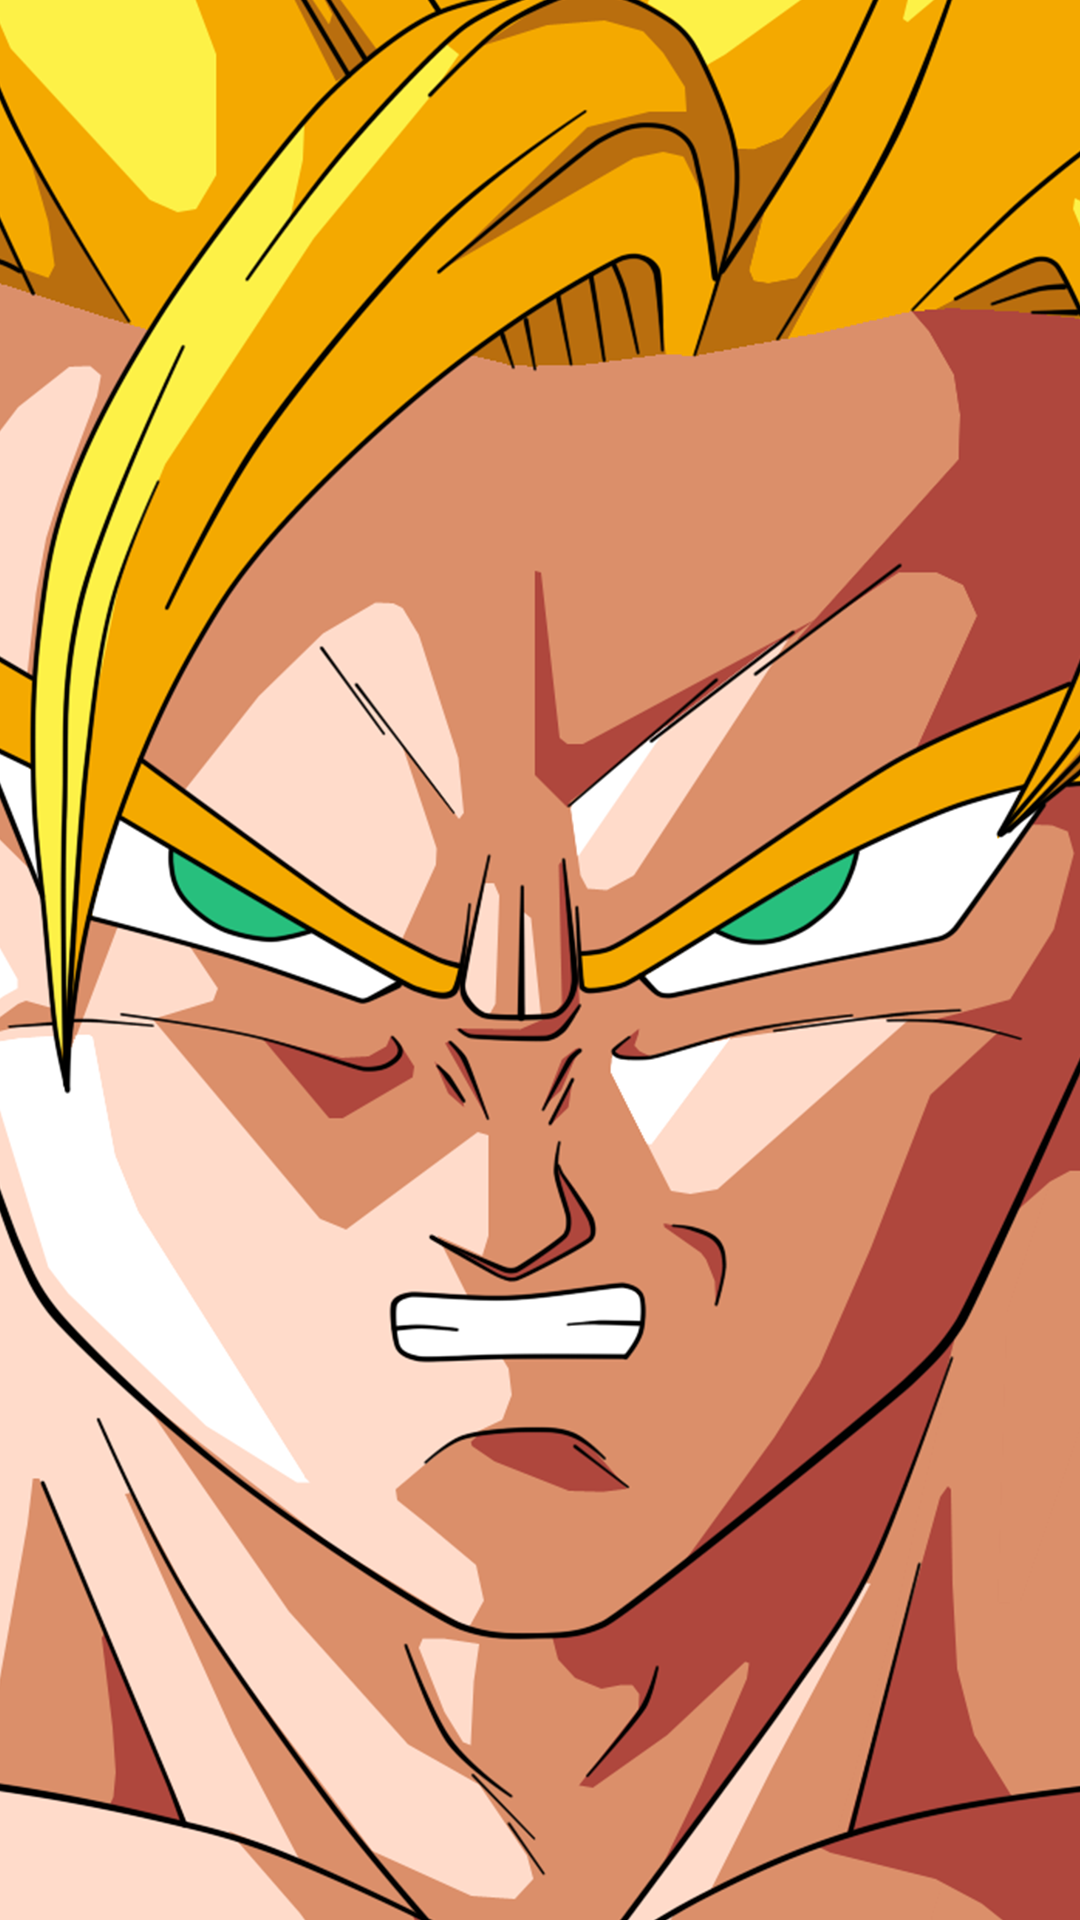 Download 500+ Wallpaper Android Hd Goku HD Paling Keren